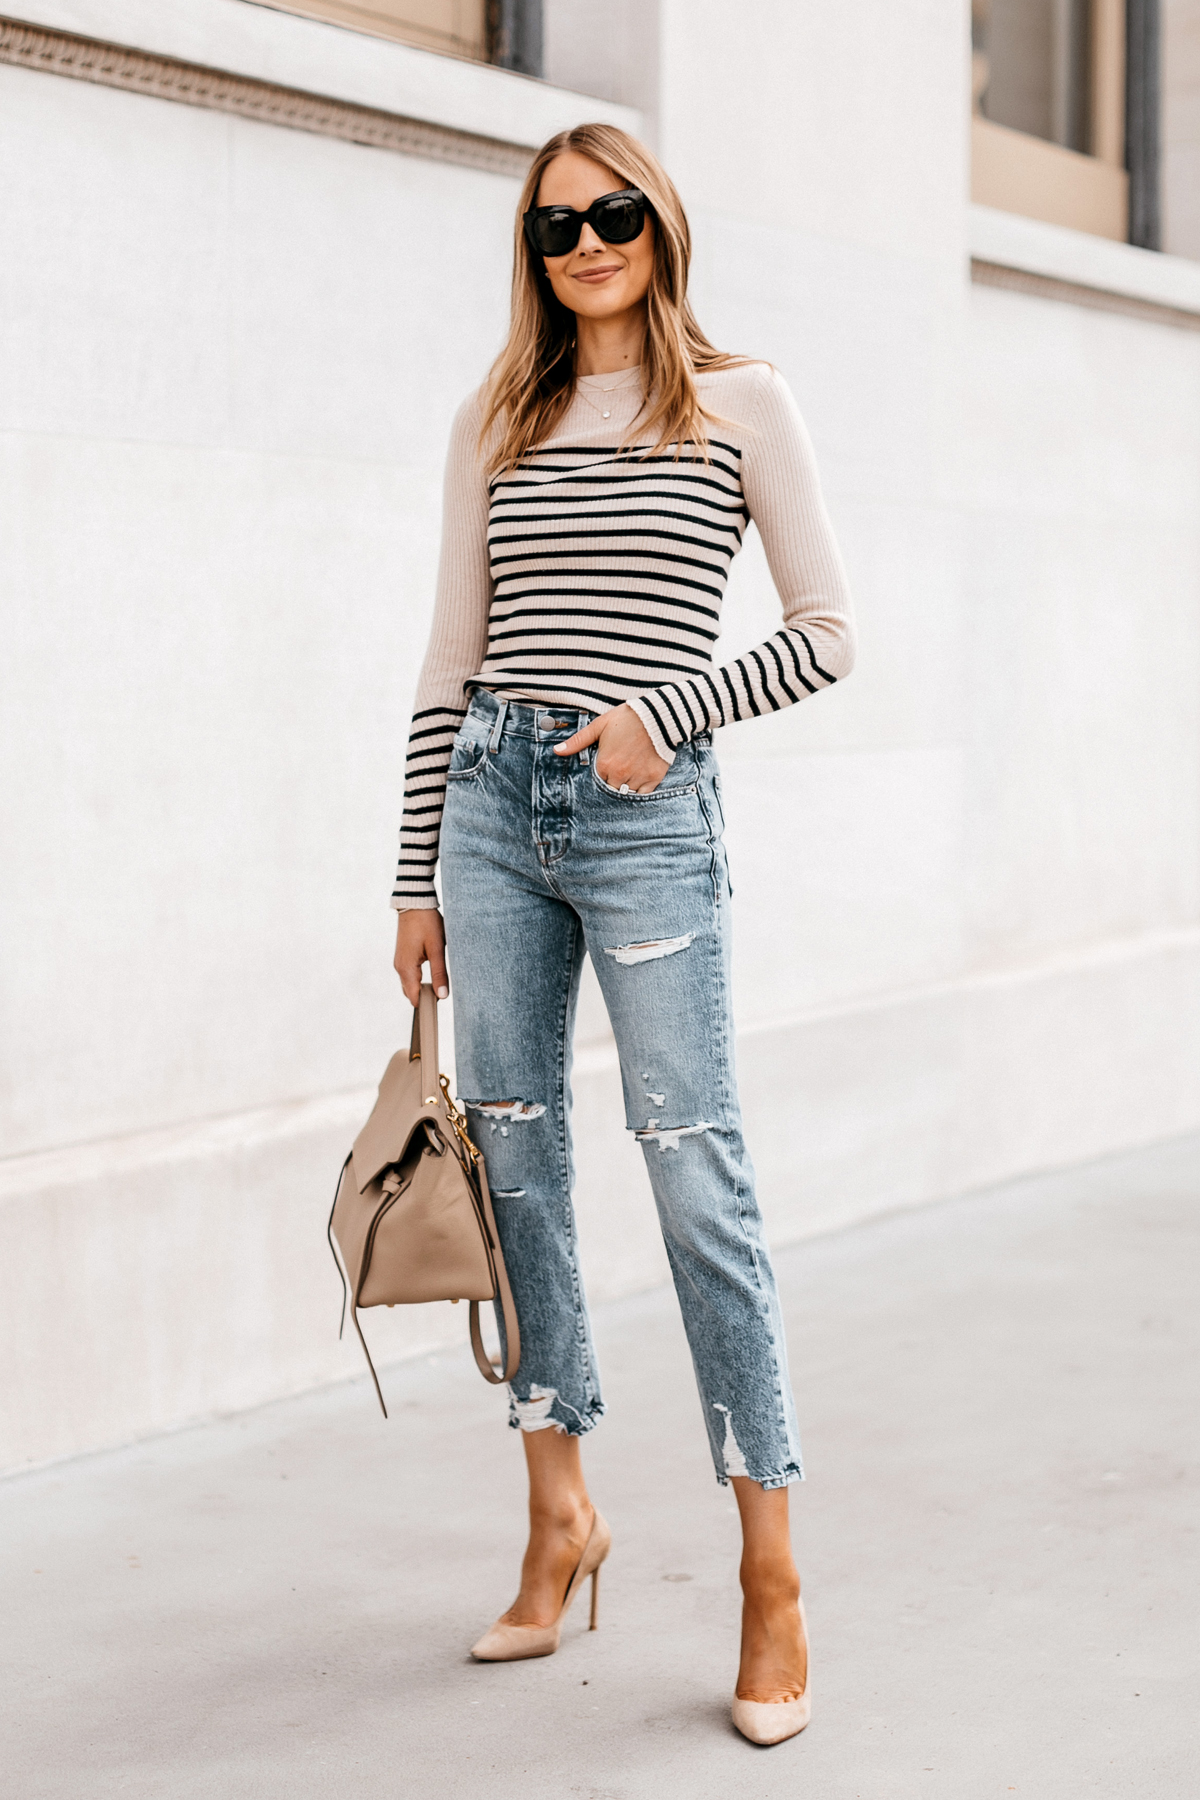 Fashion Jackson Wearing Rag and Bone Striped Long Sleeve Top Frame Ripped Boyfriend Jeans Nude Pumps Street Style Outfit